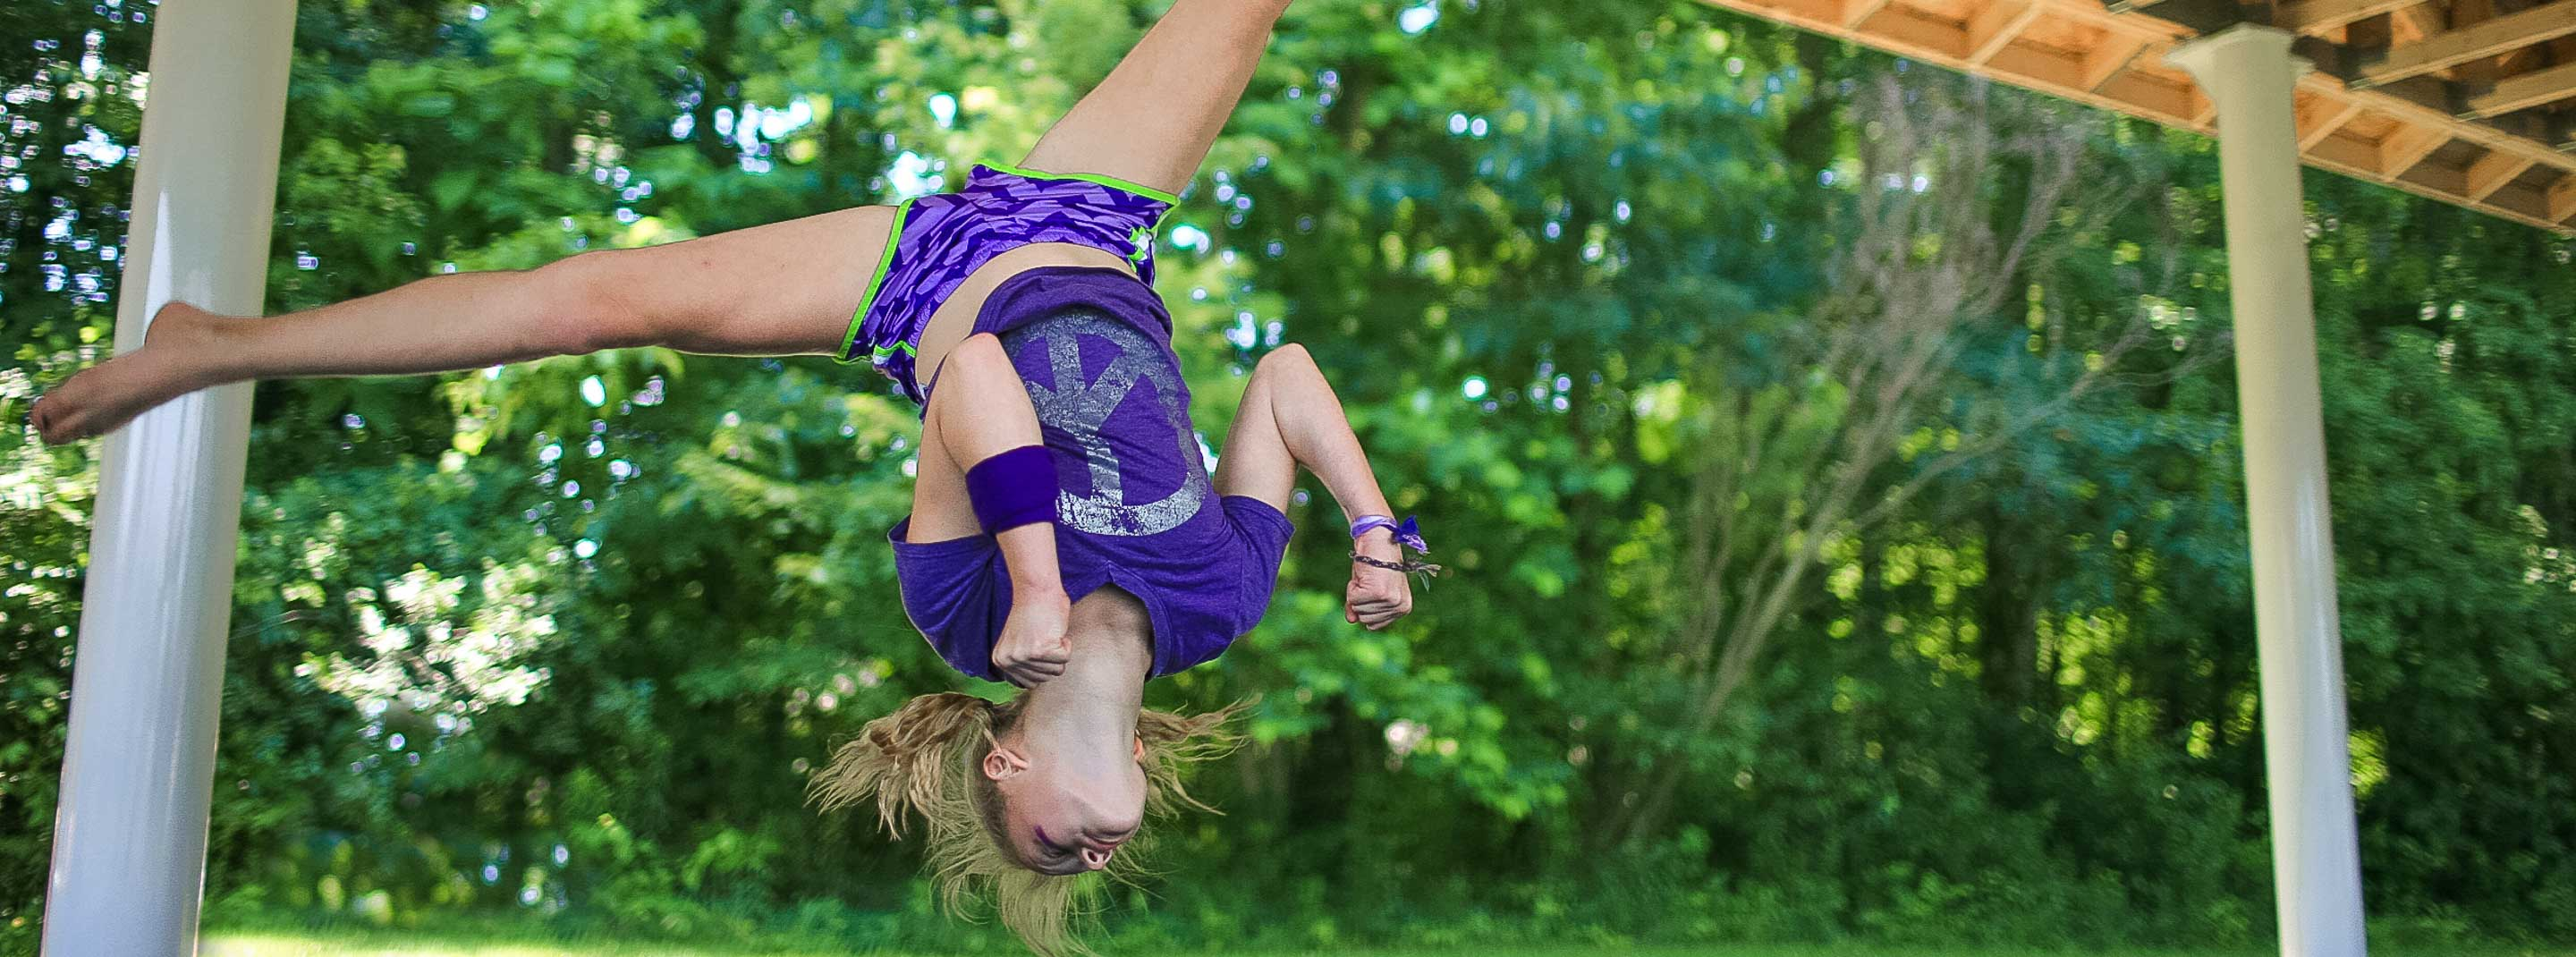 Girl doing a gymnastics trick